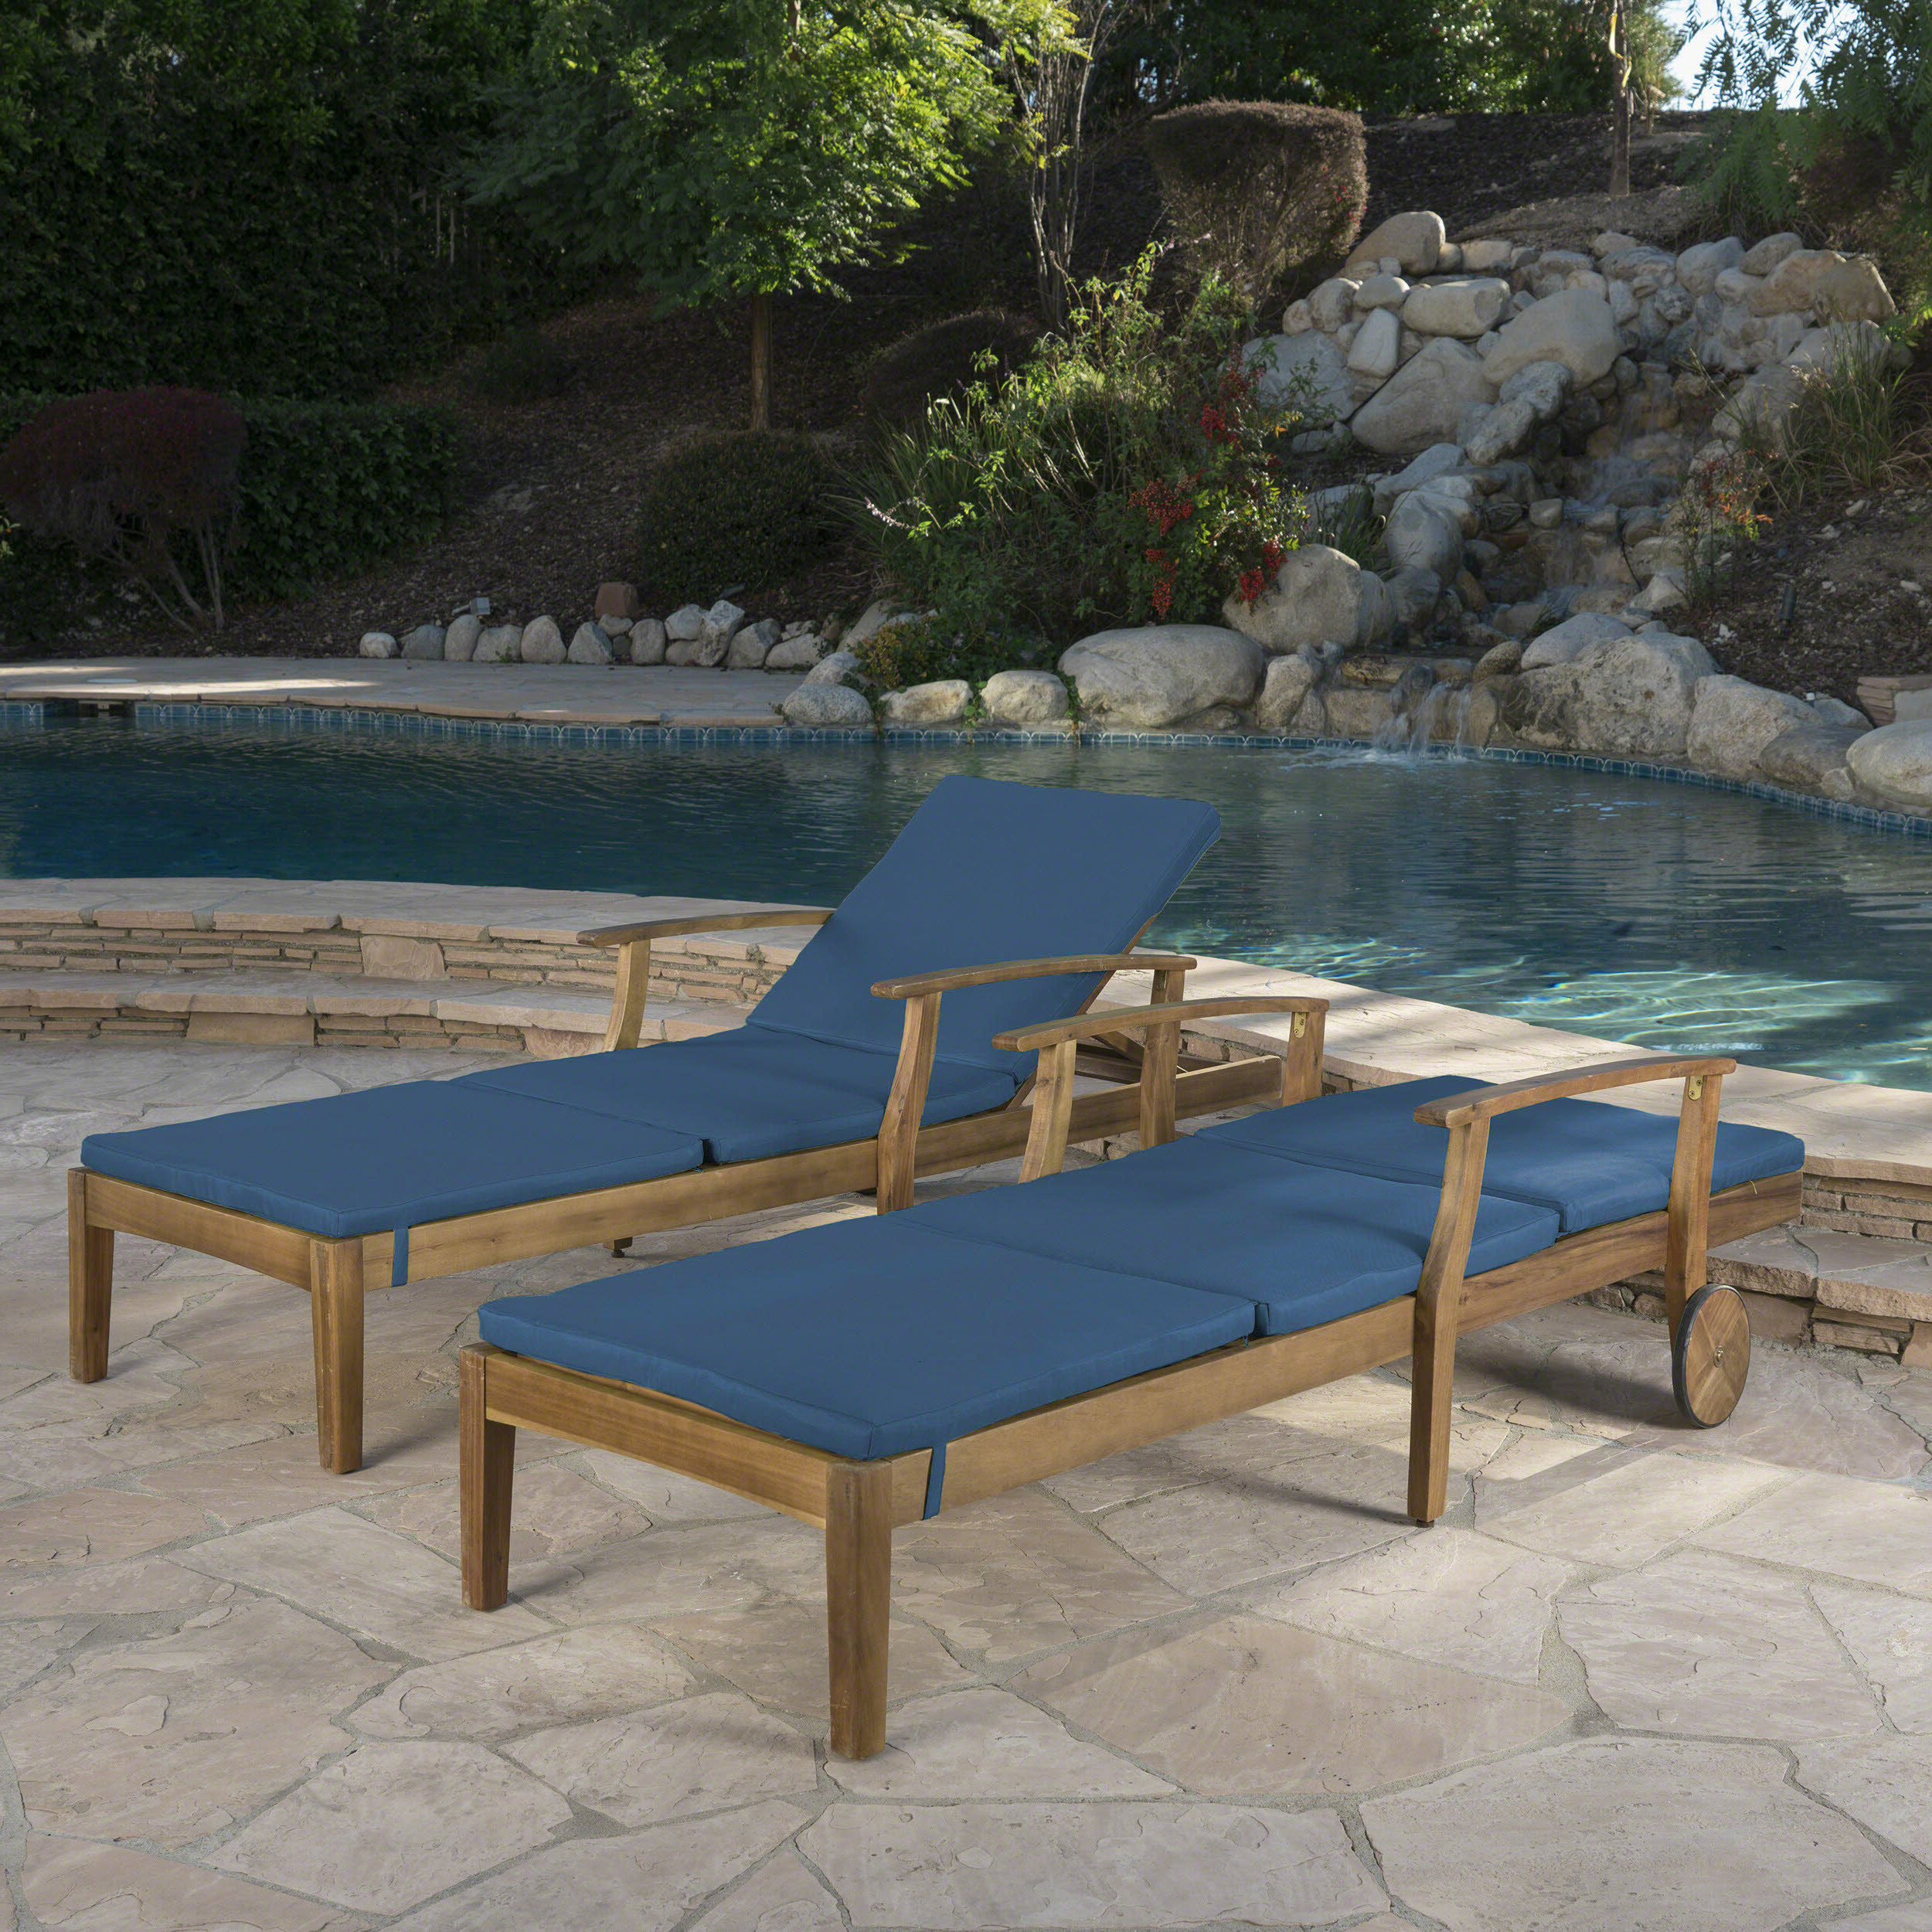 Outdoor Acacia Wood Chaise Lounges And Cushion Sets Throughout Best And Newest Mistana Antonia Reclining Chaise Lounge With Cushion (Gallery 25 of 25)